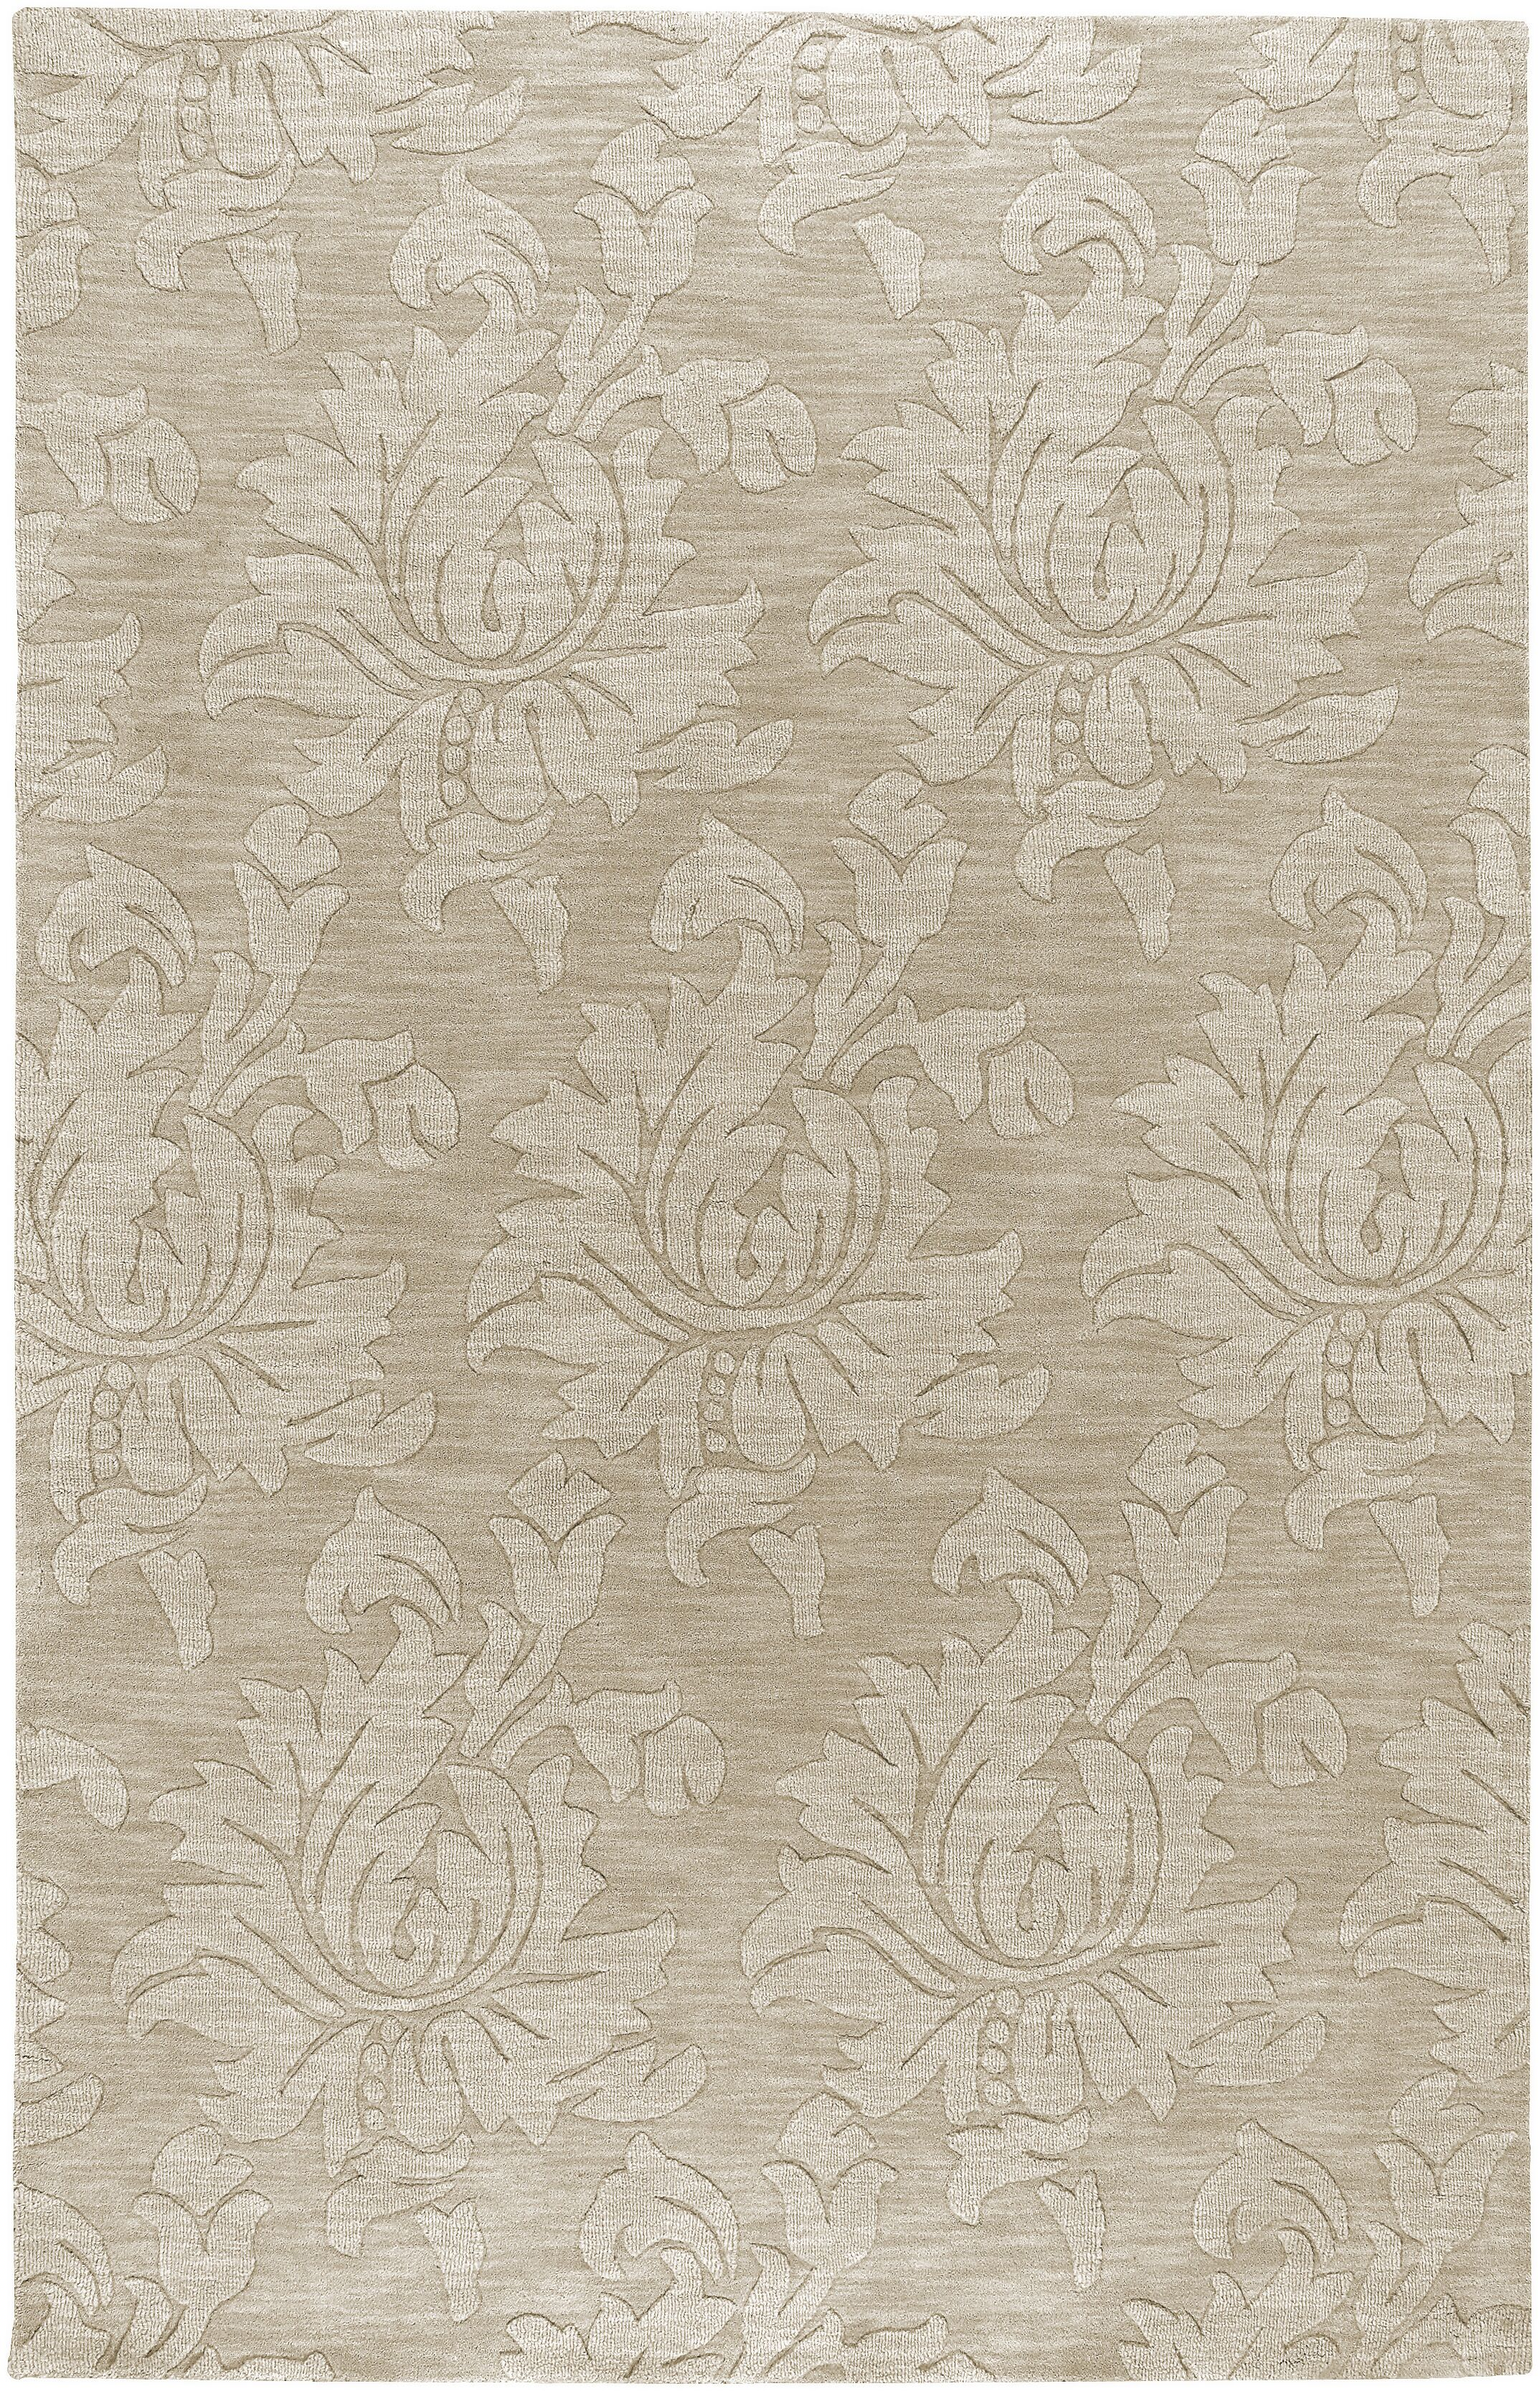 Ardal Hand-Woven Wool Beige Area Rug Rug Size: Rectangle 8' x 10'